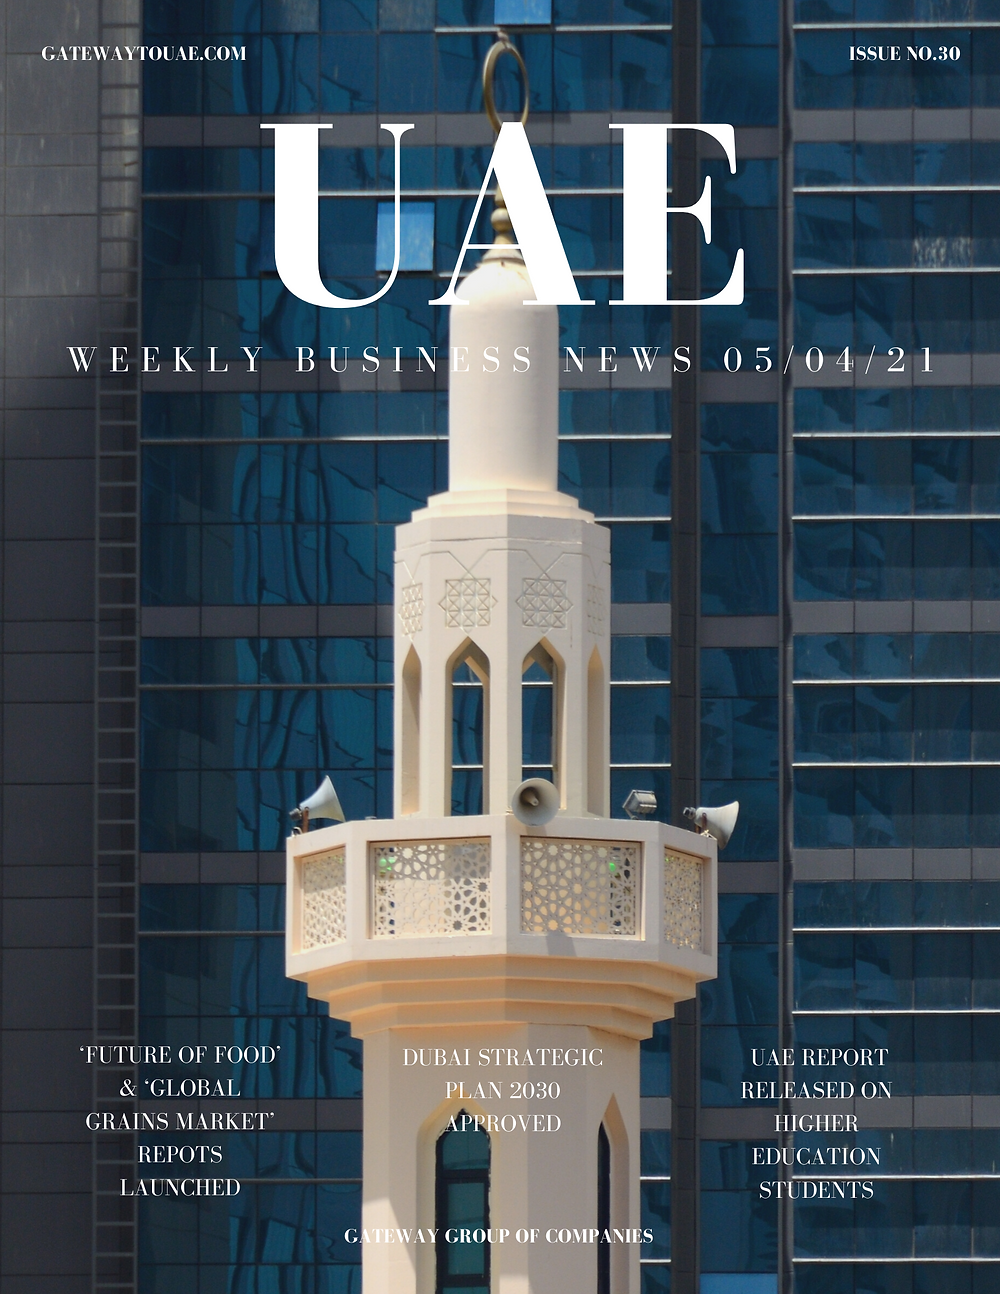 UAE weekly business news headlines 5th April 2021 Issue 30 Gateway Group Of Companies Abu Dhabi Dubai weekly magazine company formation business setup local sponsor service agent visas company formation authority trade licence license